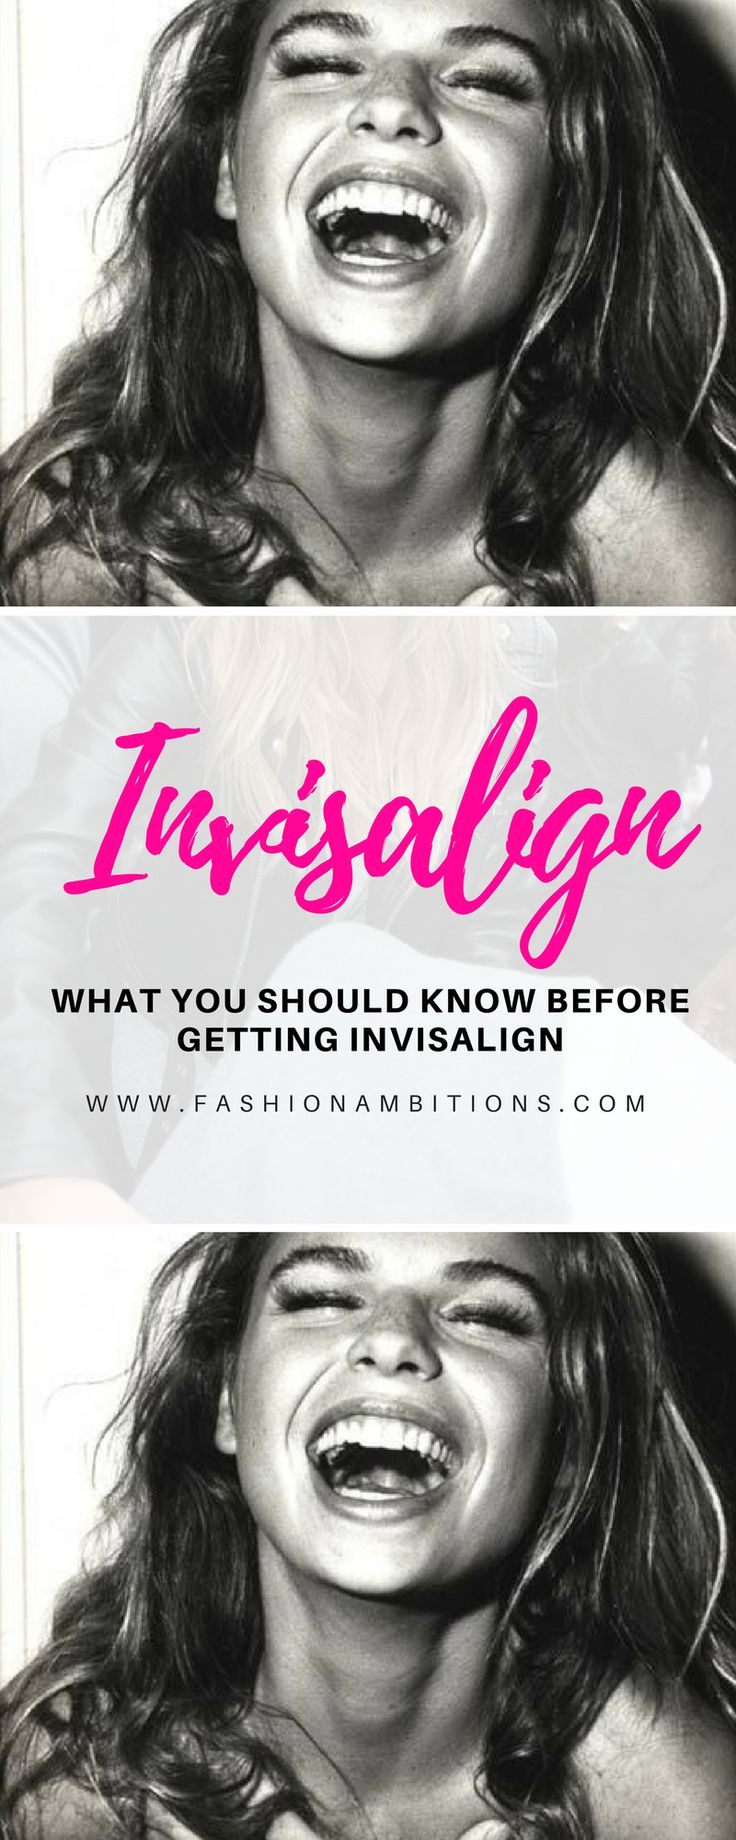 What You Should Know Before Getting Invisalign